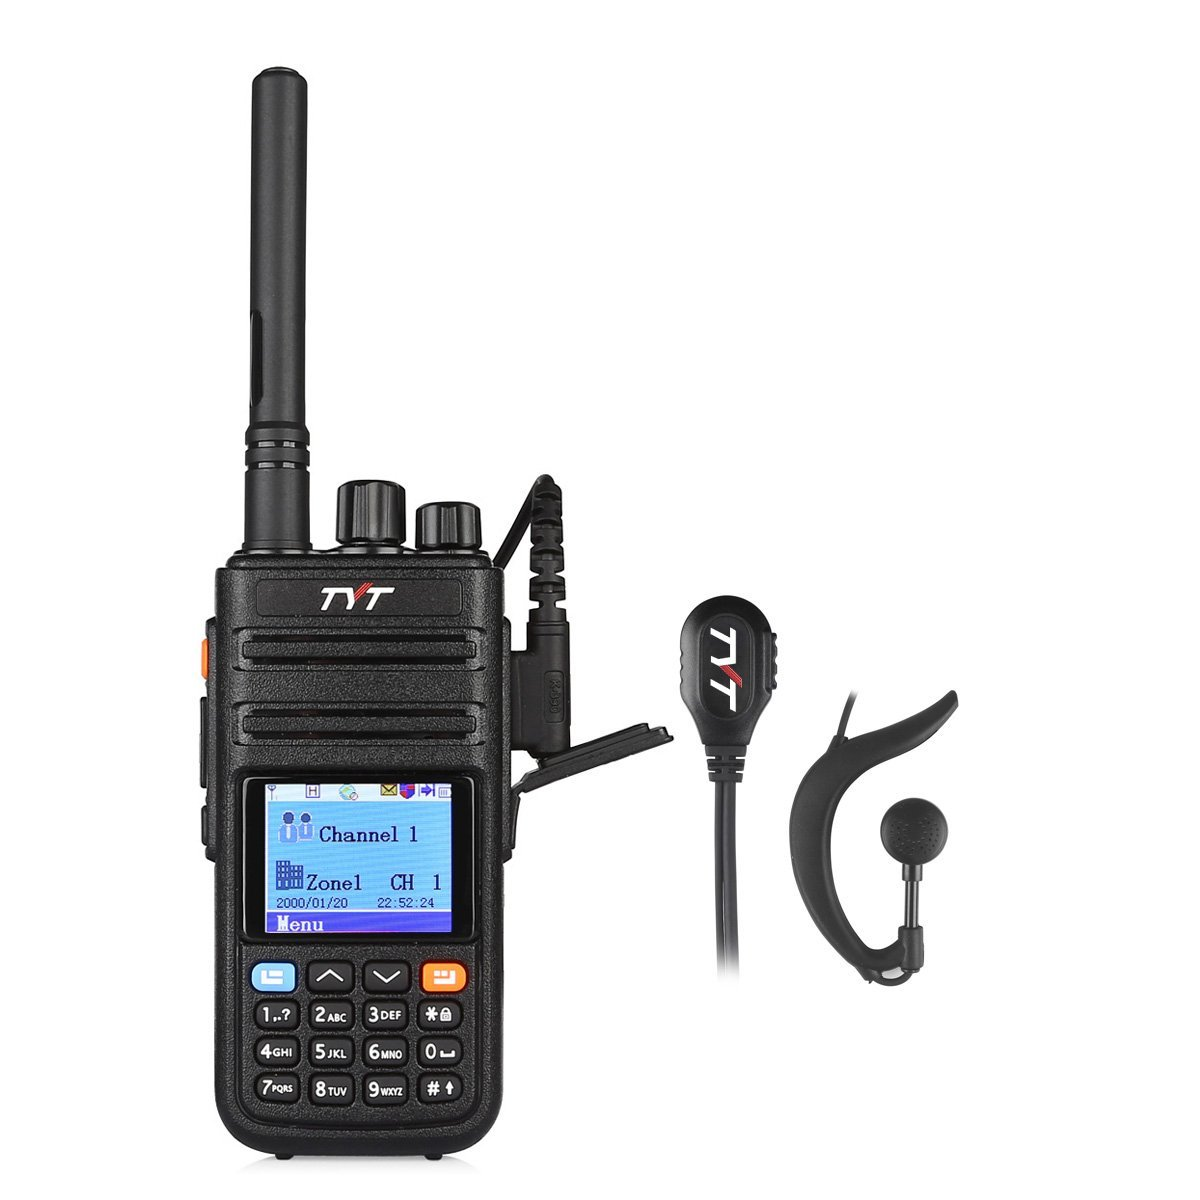 TYT Tytera Upgraded MD-380G DMR Digital Radio, with GPS Function! VHF 136-174MHz Two-Way Radio, Walkie Talkie Compatible with Mototrbo, Transceiver with 2 Antenna & Programming Cable & Earpiece